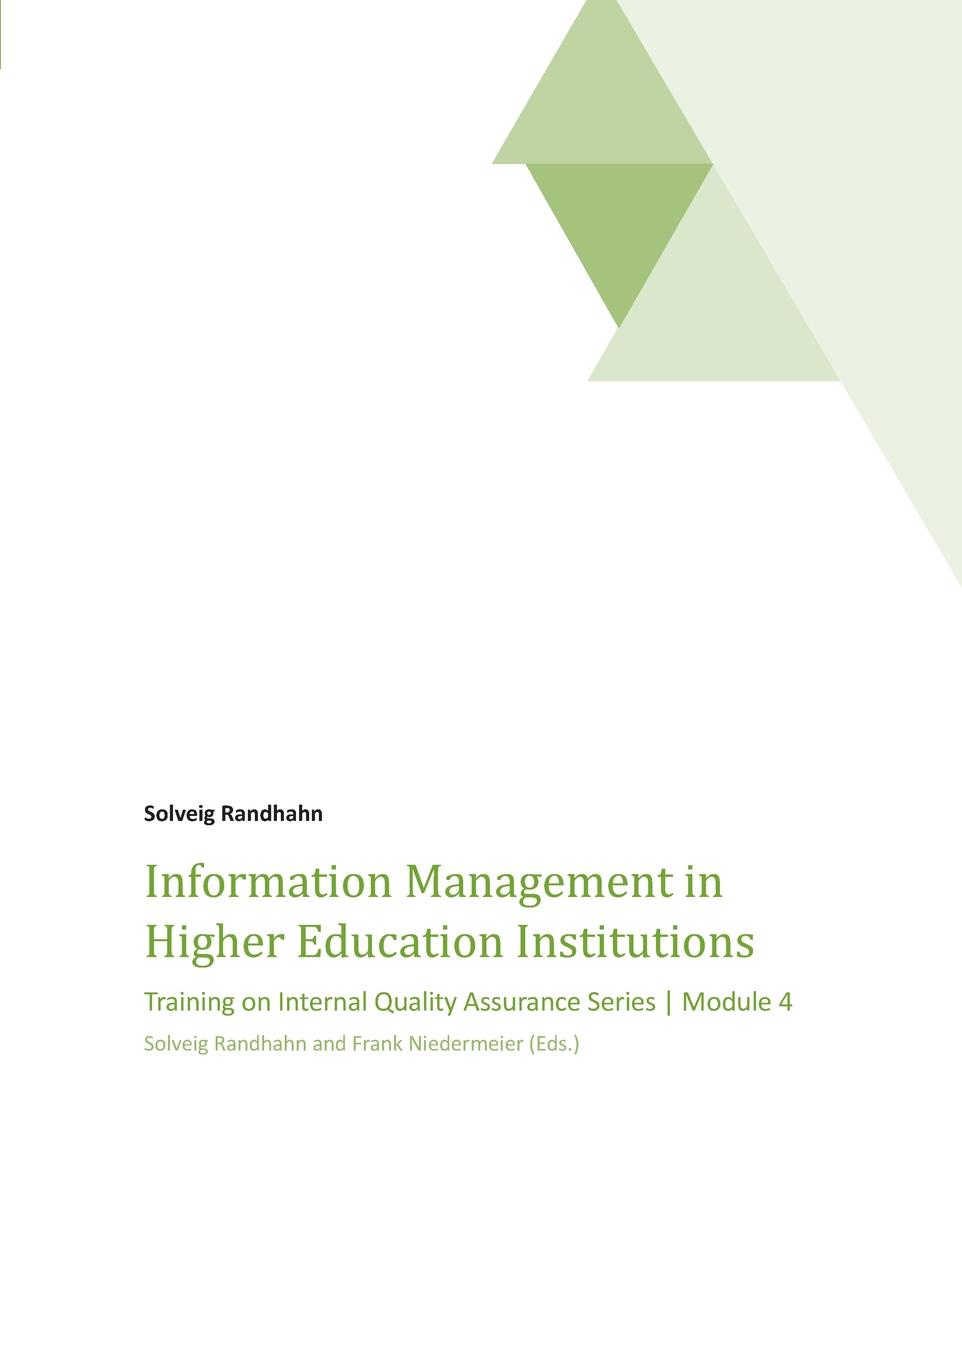 Dr. Solveig Randhahn Information Management in Higher Education Institutions цена